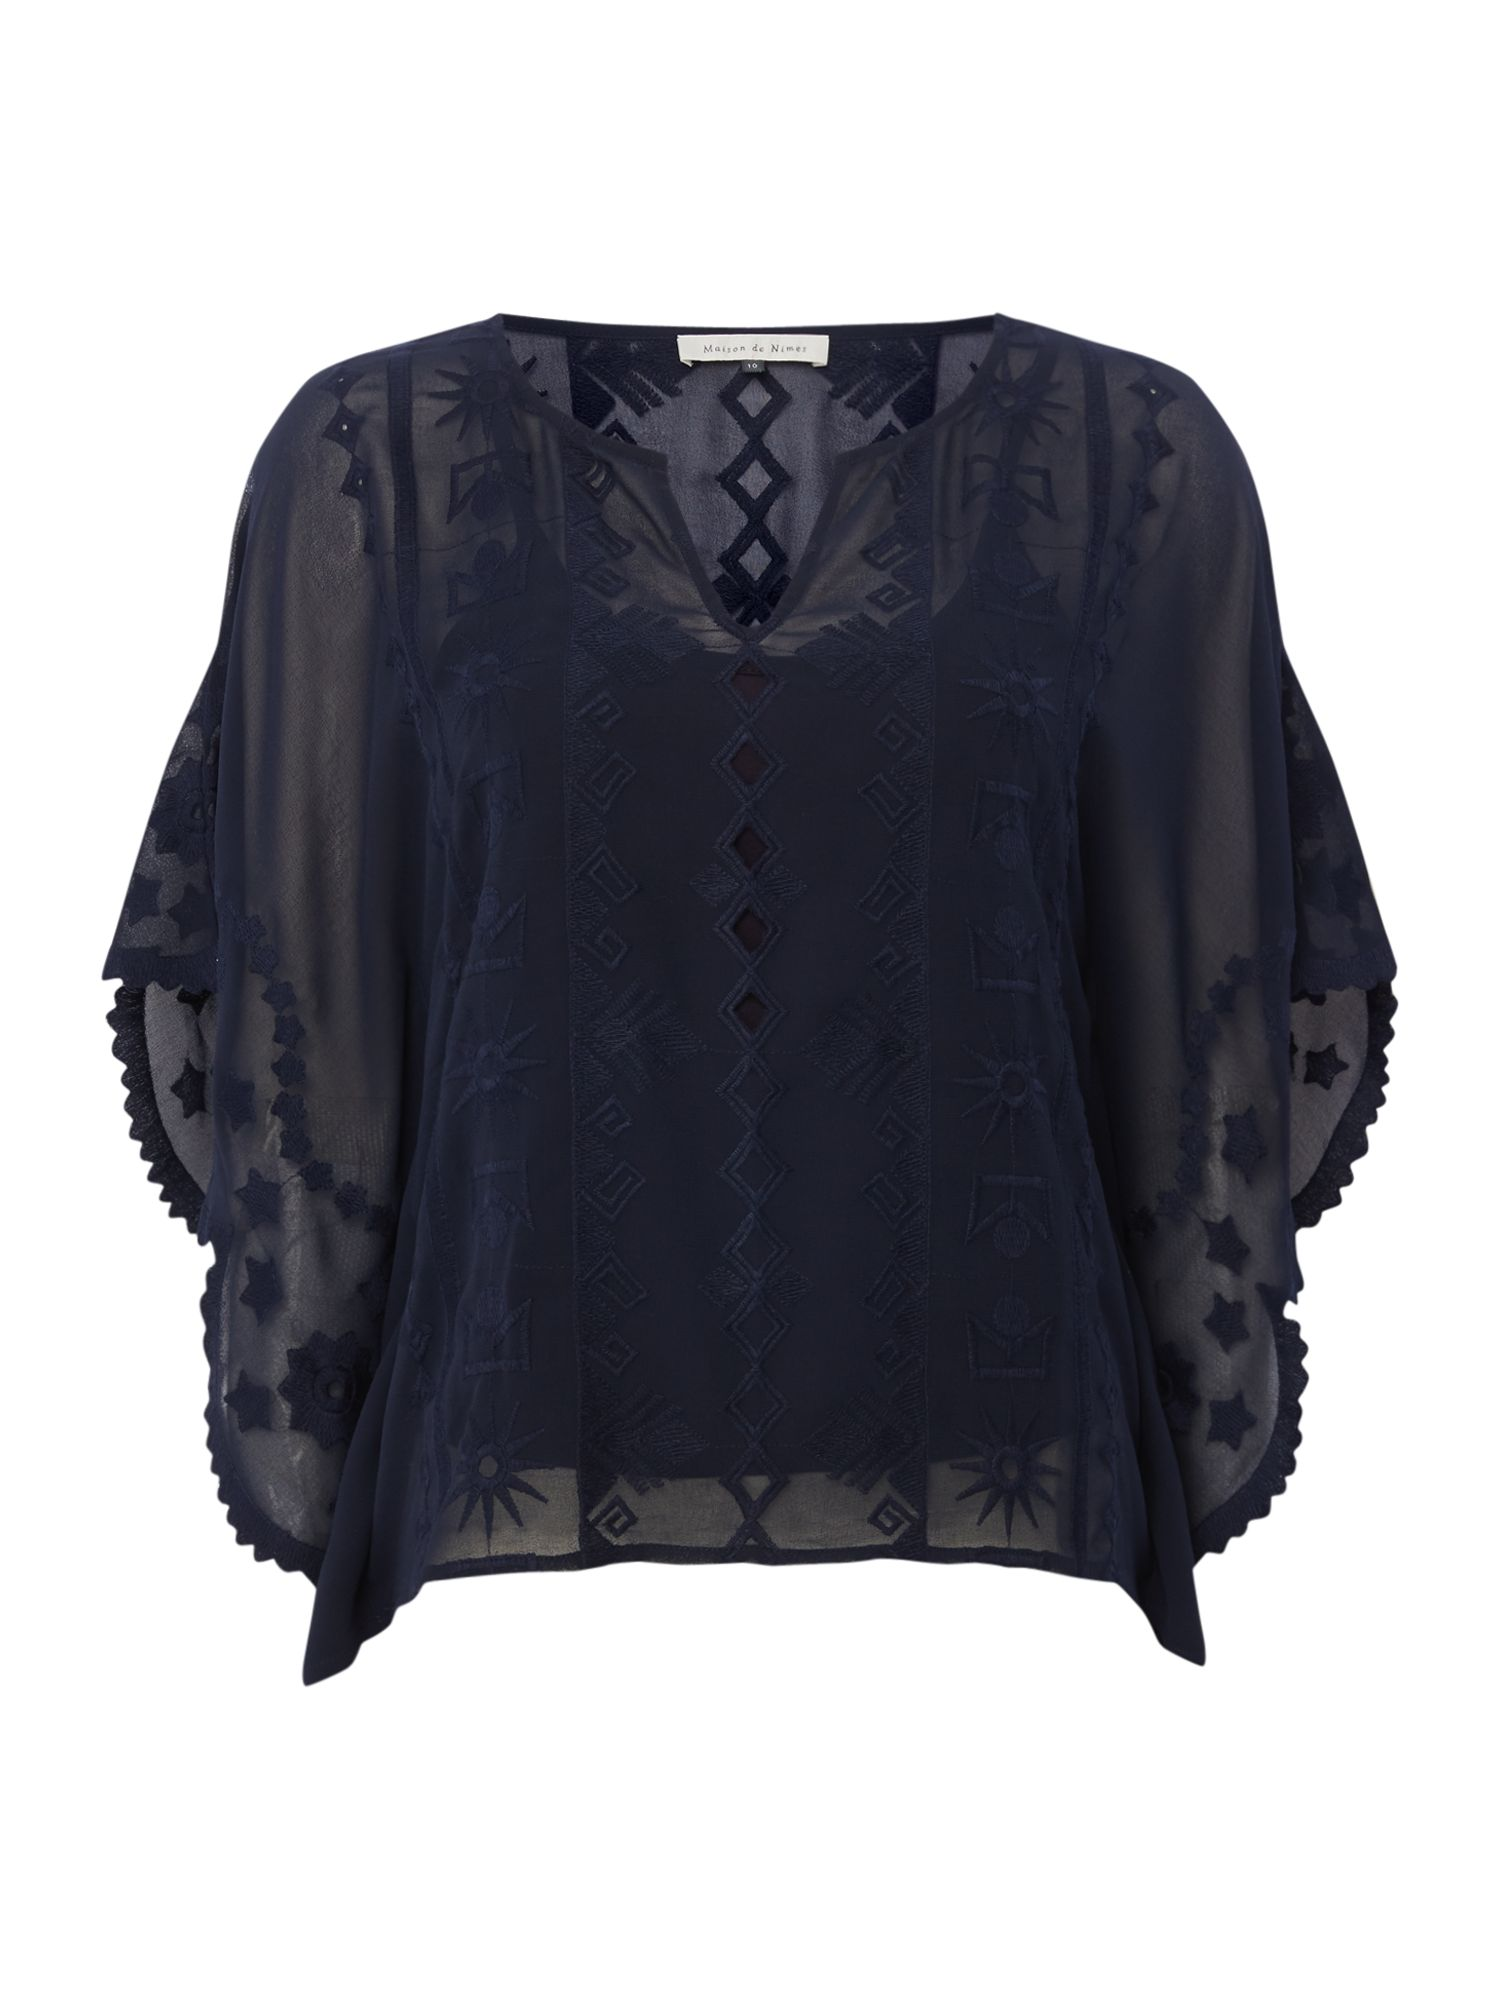 Maison De Nimes Embroidered Blouse, Blue